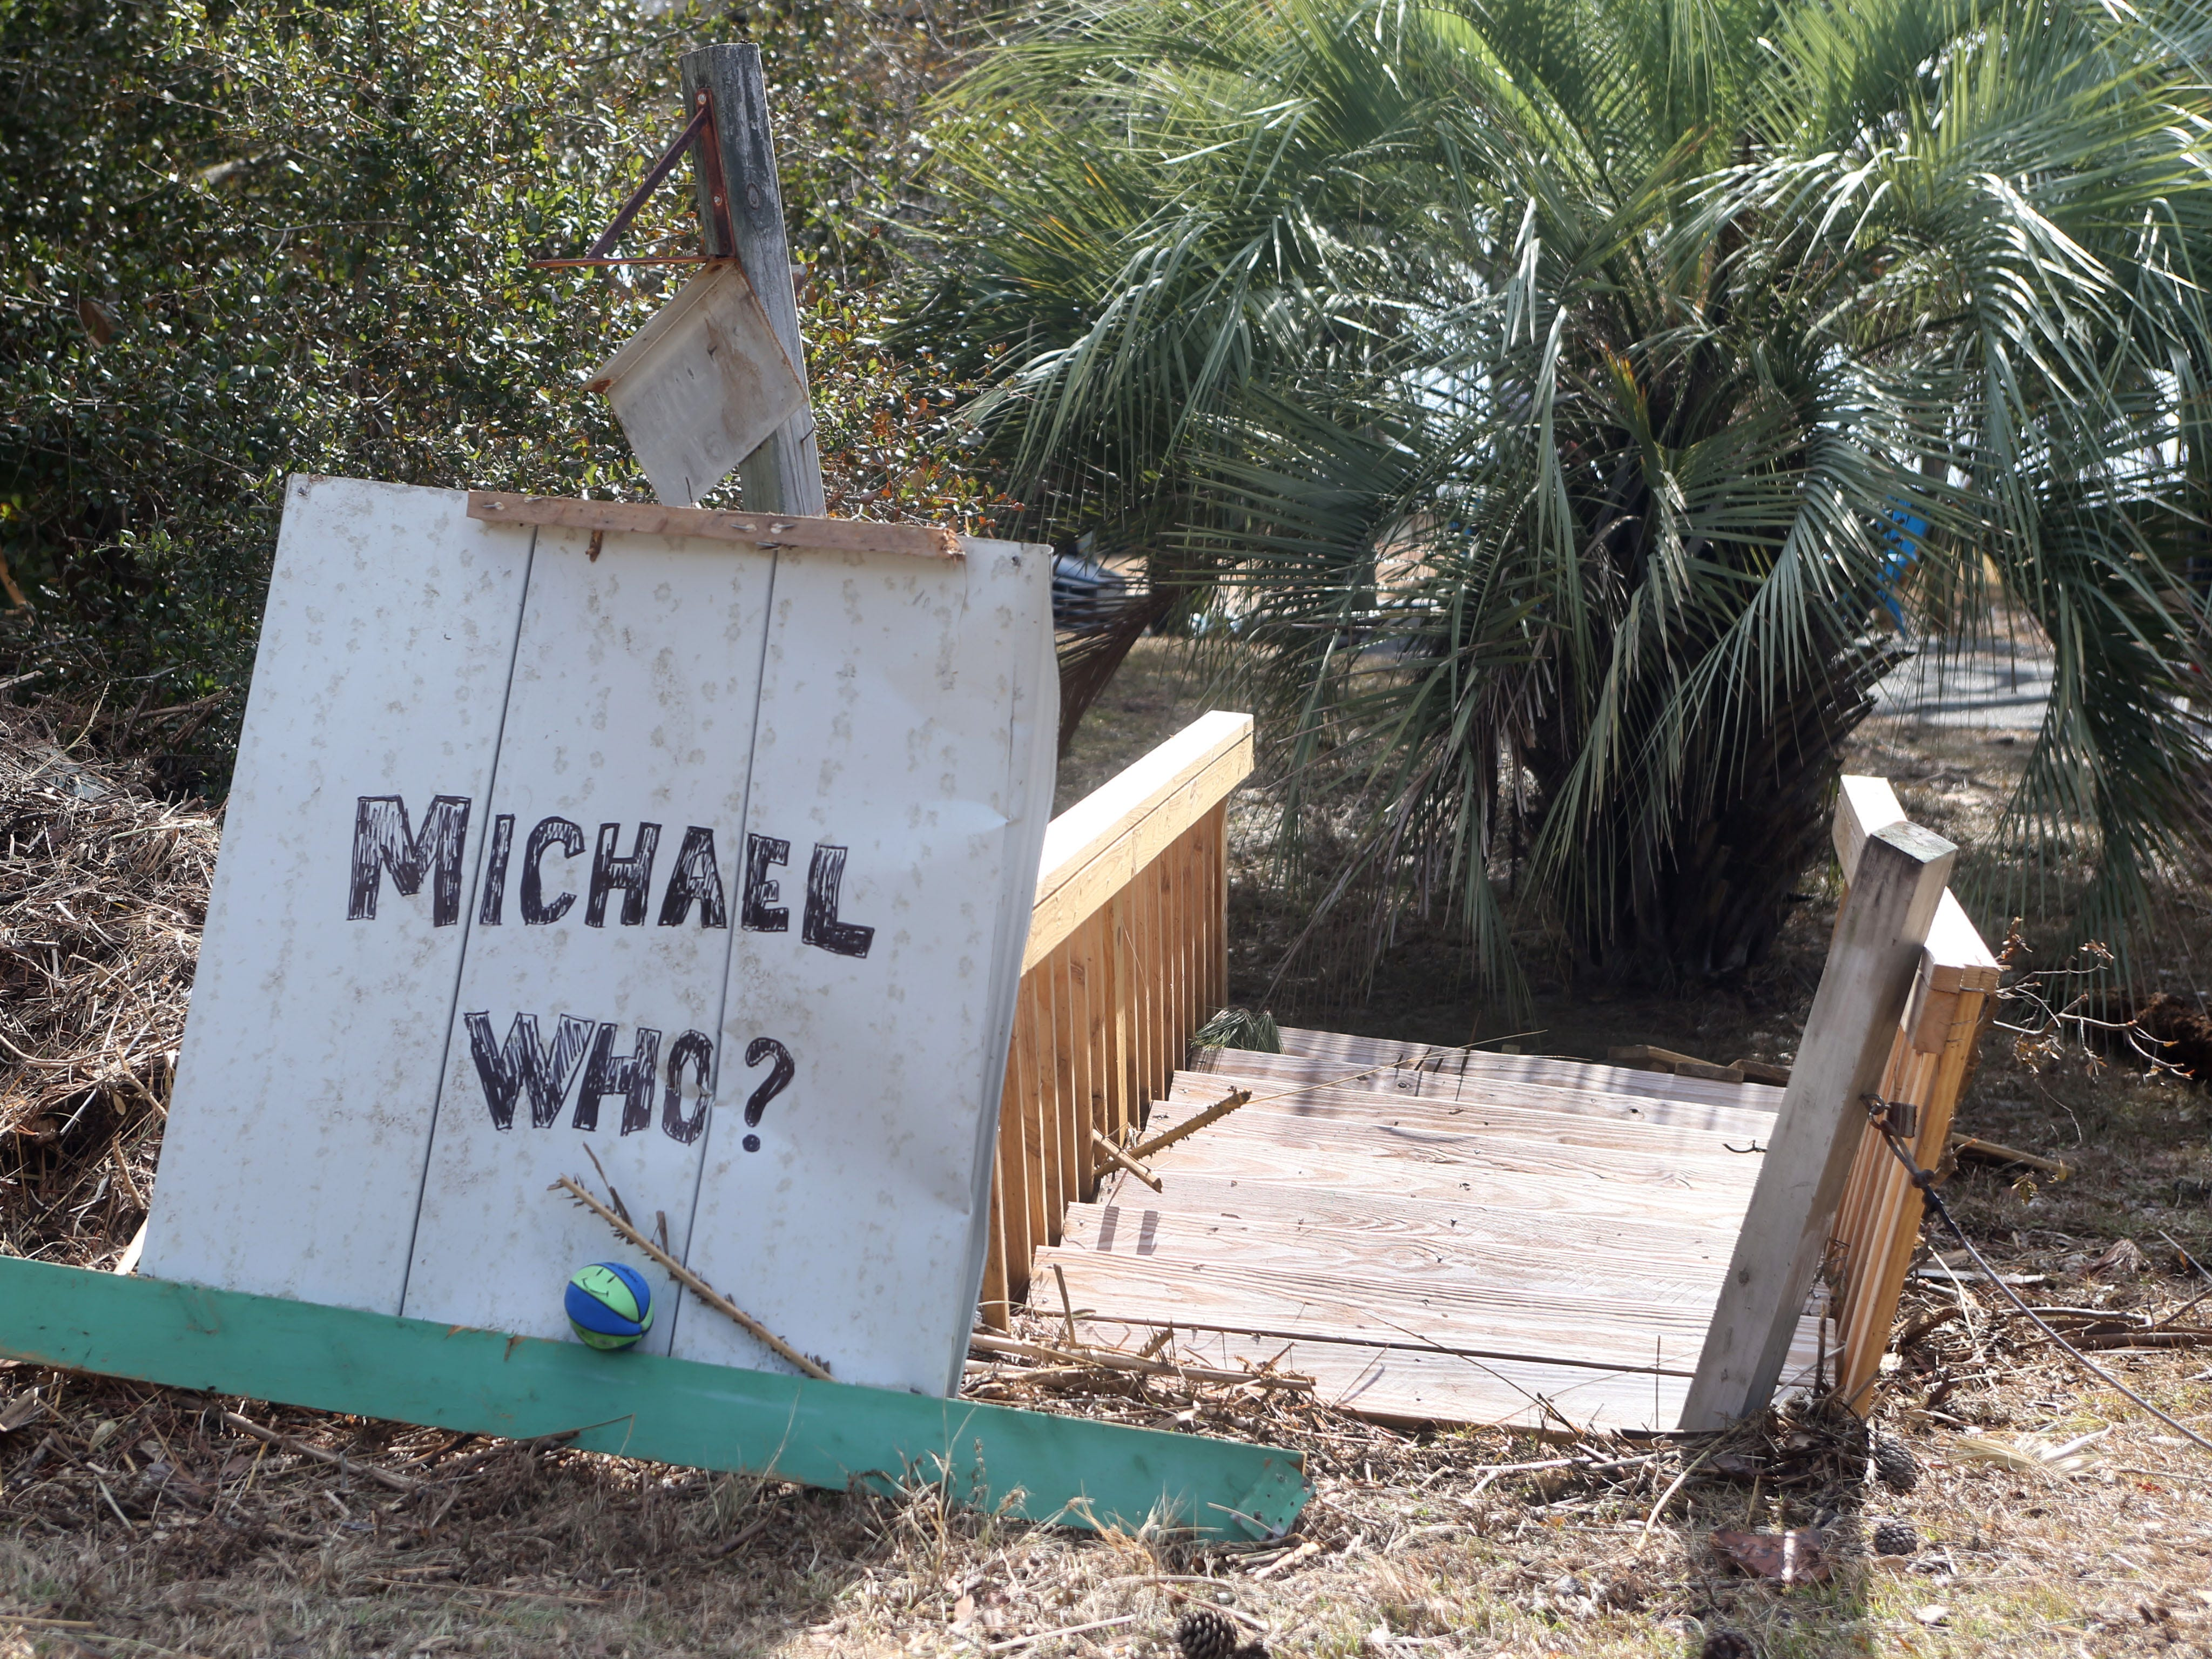 A handwritten sign displays the attitude of those affected by Hurricane Michael in Lanark Fla. on Monday, Oct. 15, 2018.